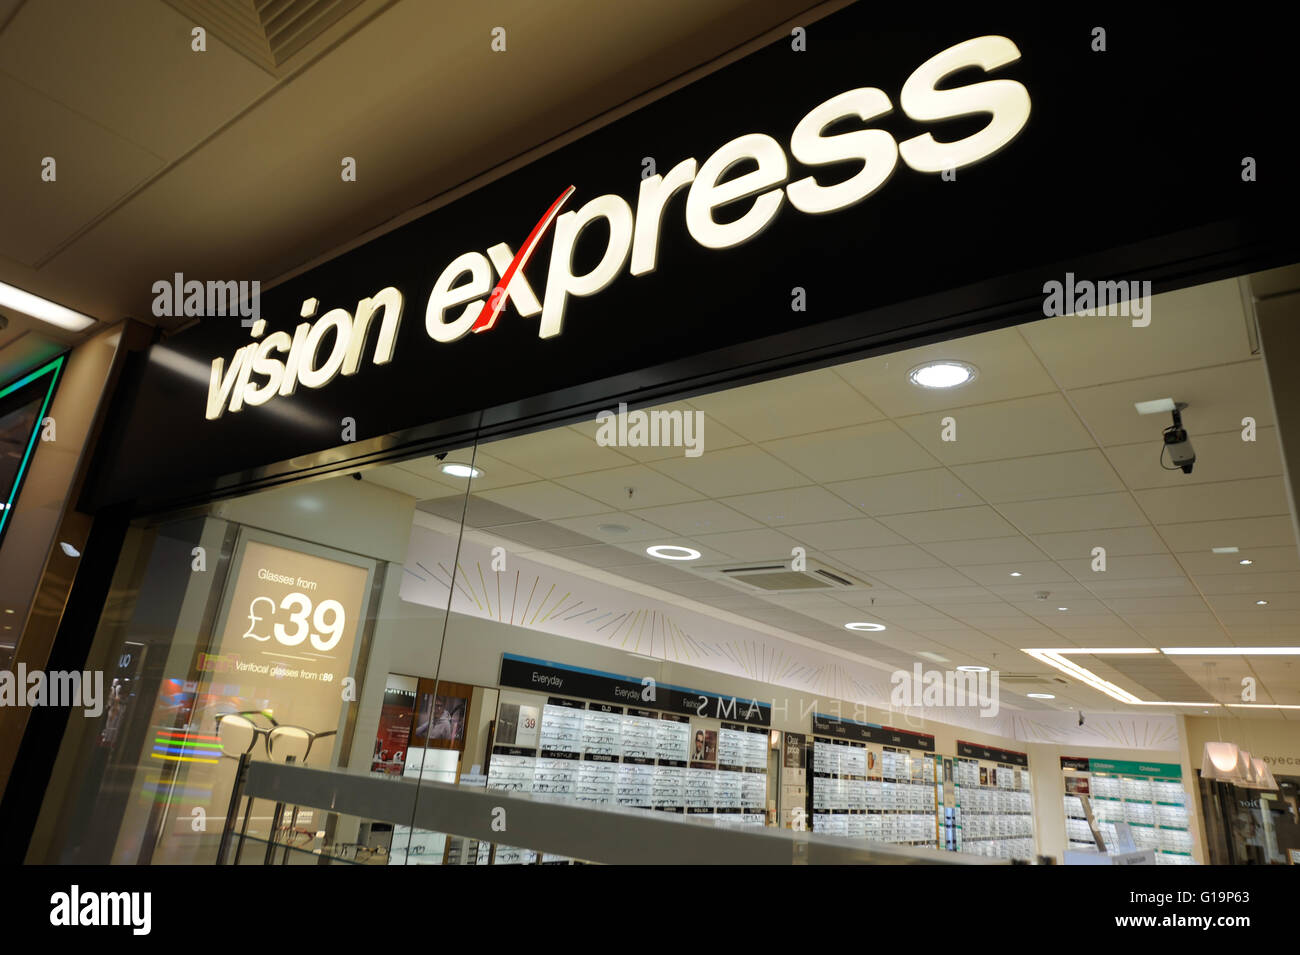 Vision Express,opticians,optic shop,UK - Stock Image